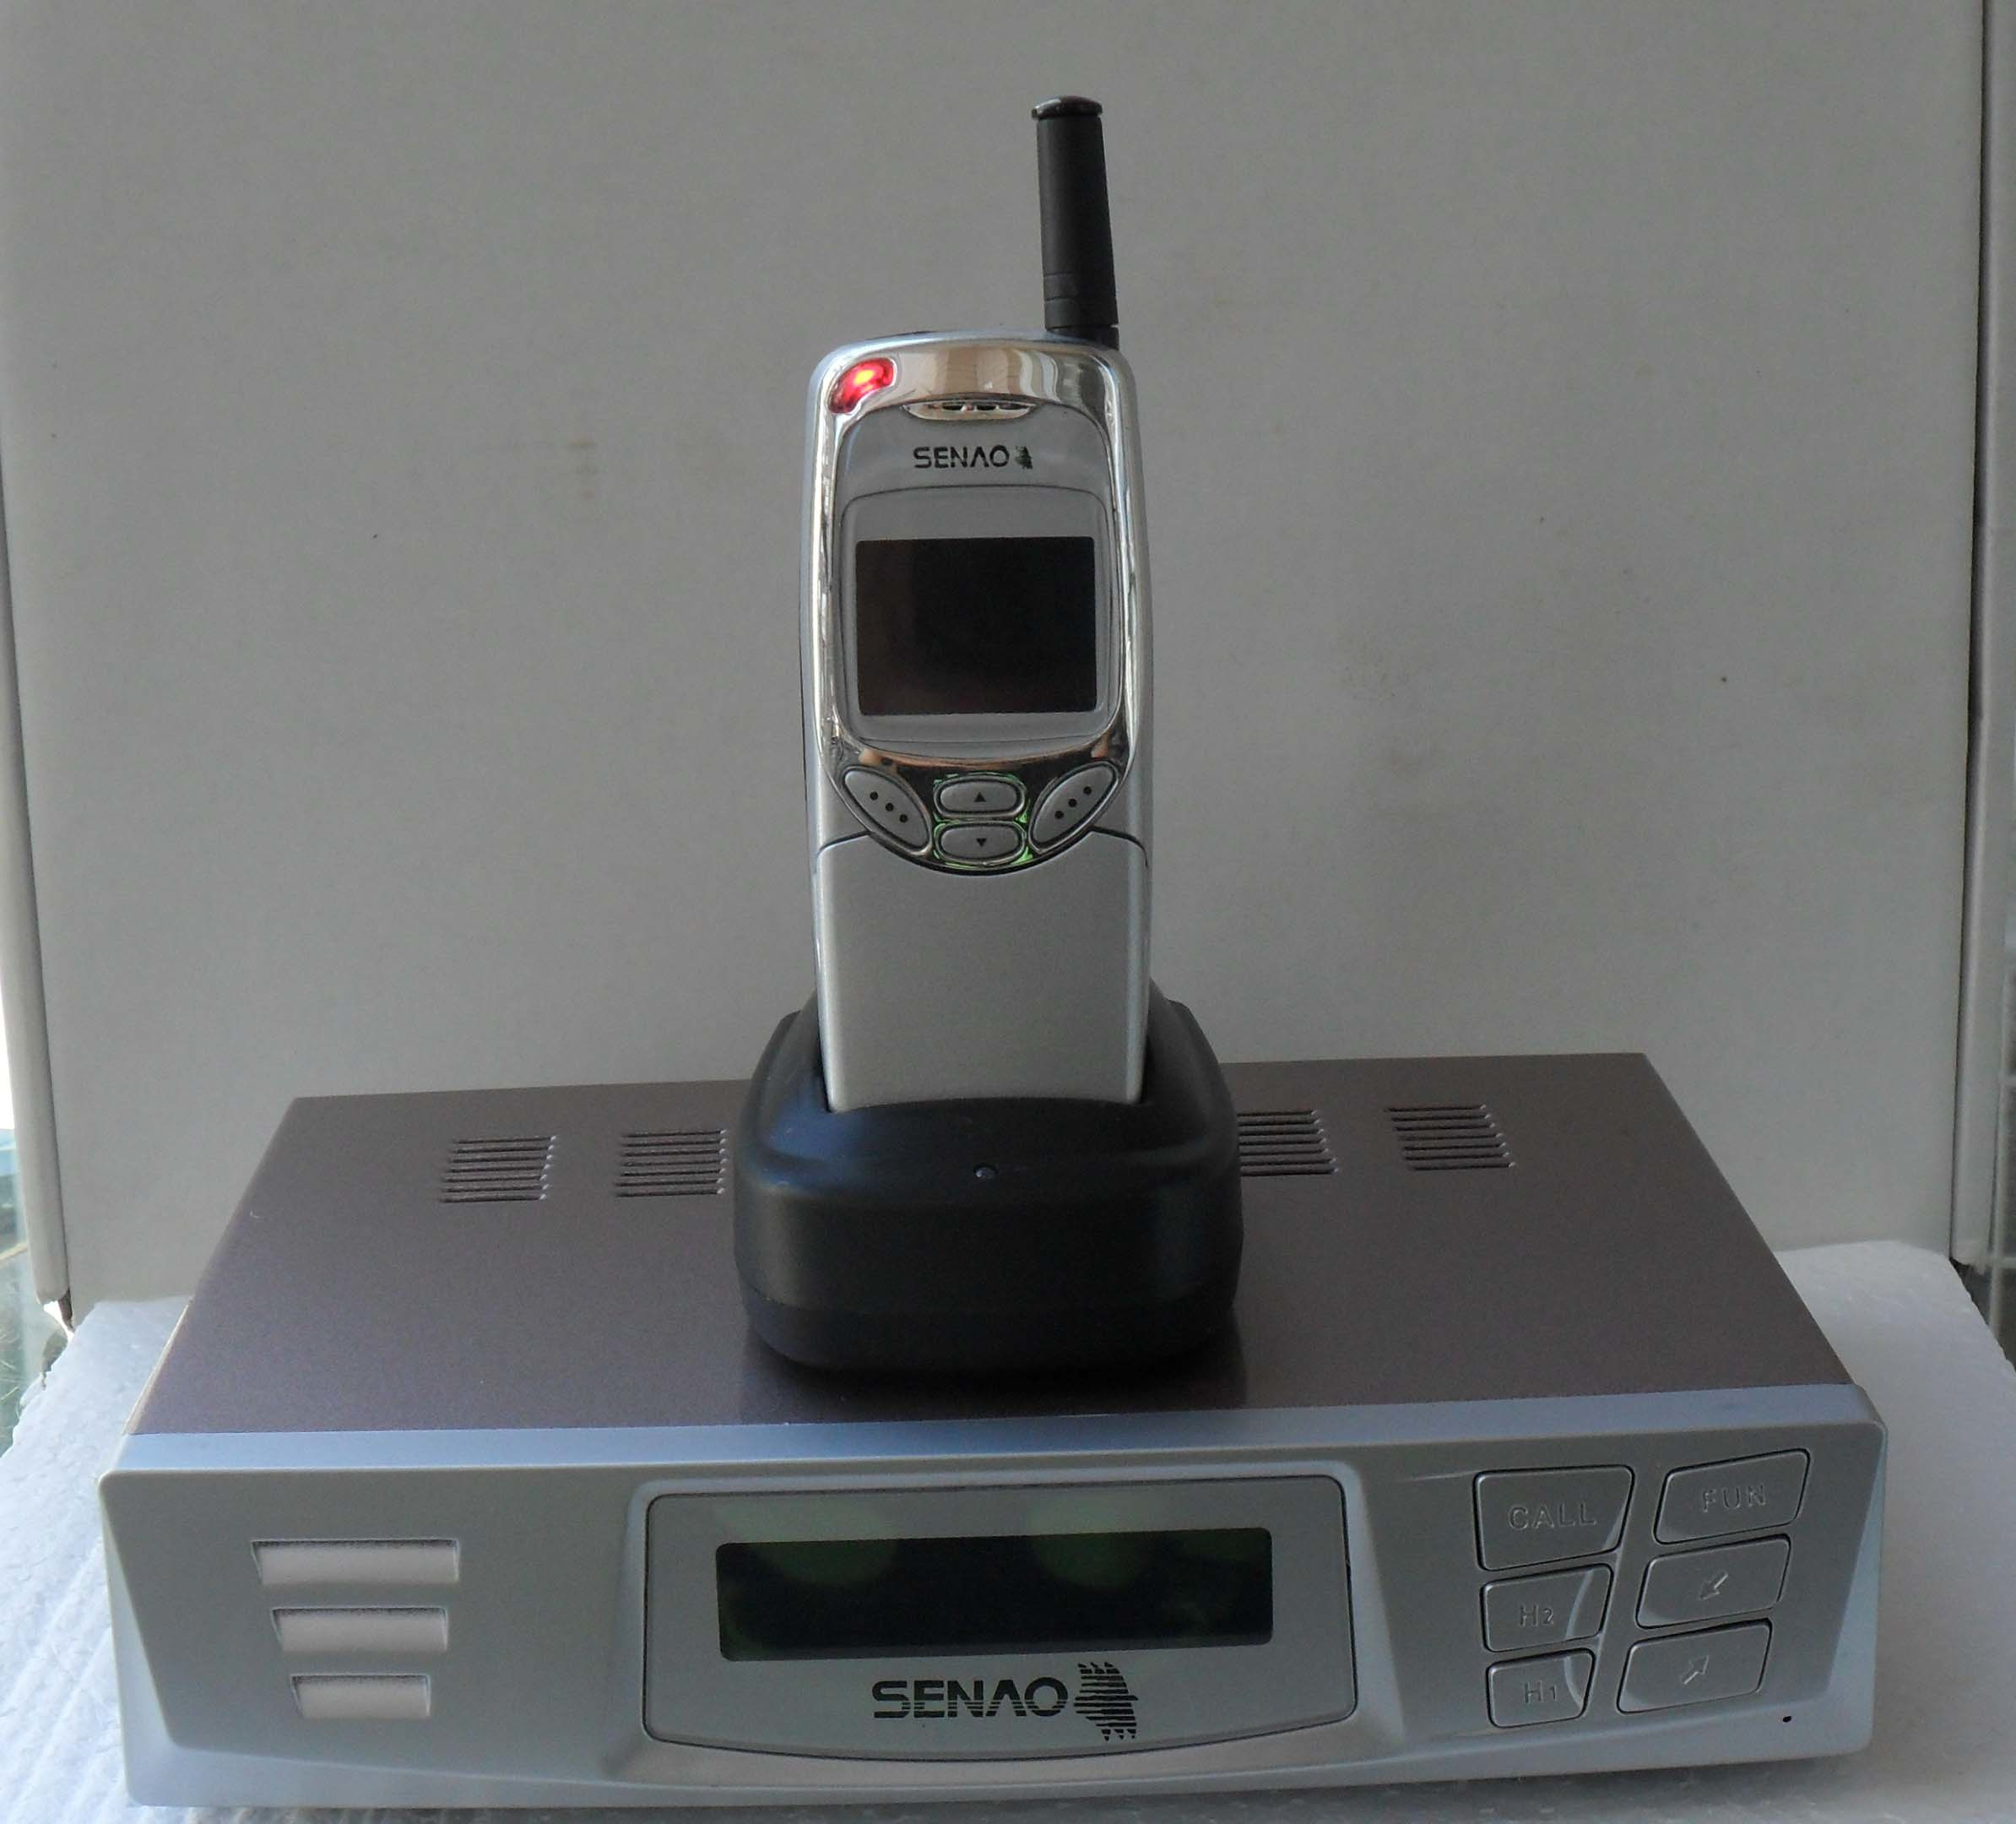 Senao Sn-629 Long Distance Cordless Phone for Communication